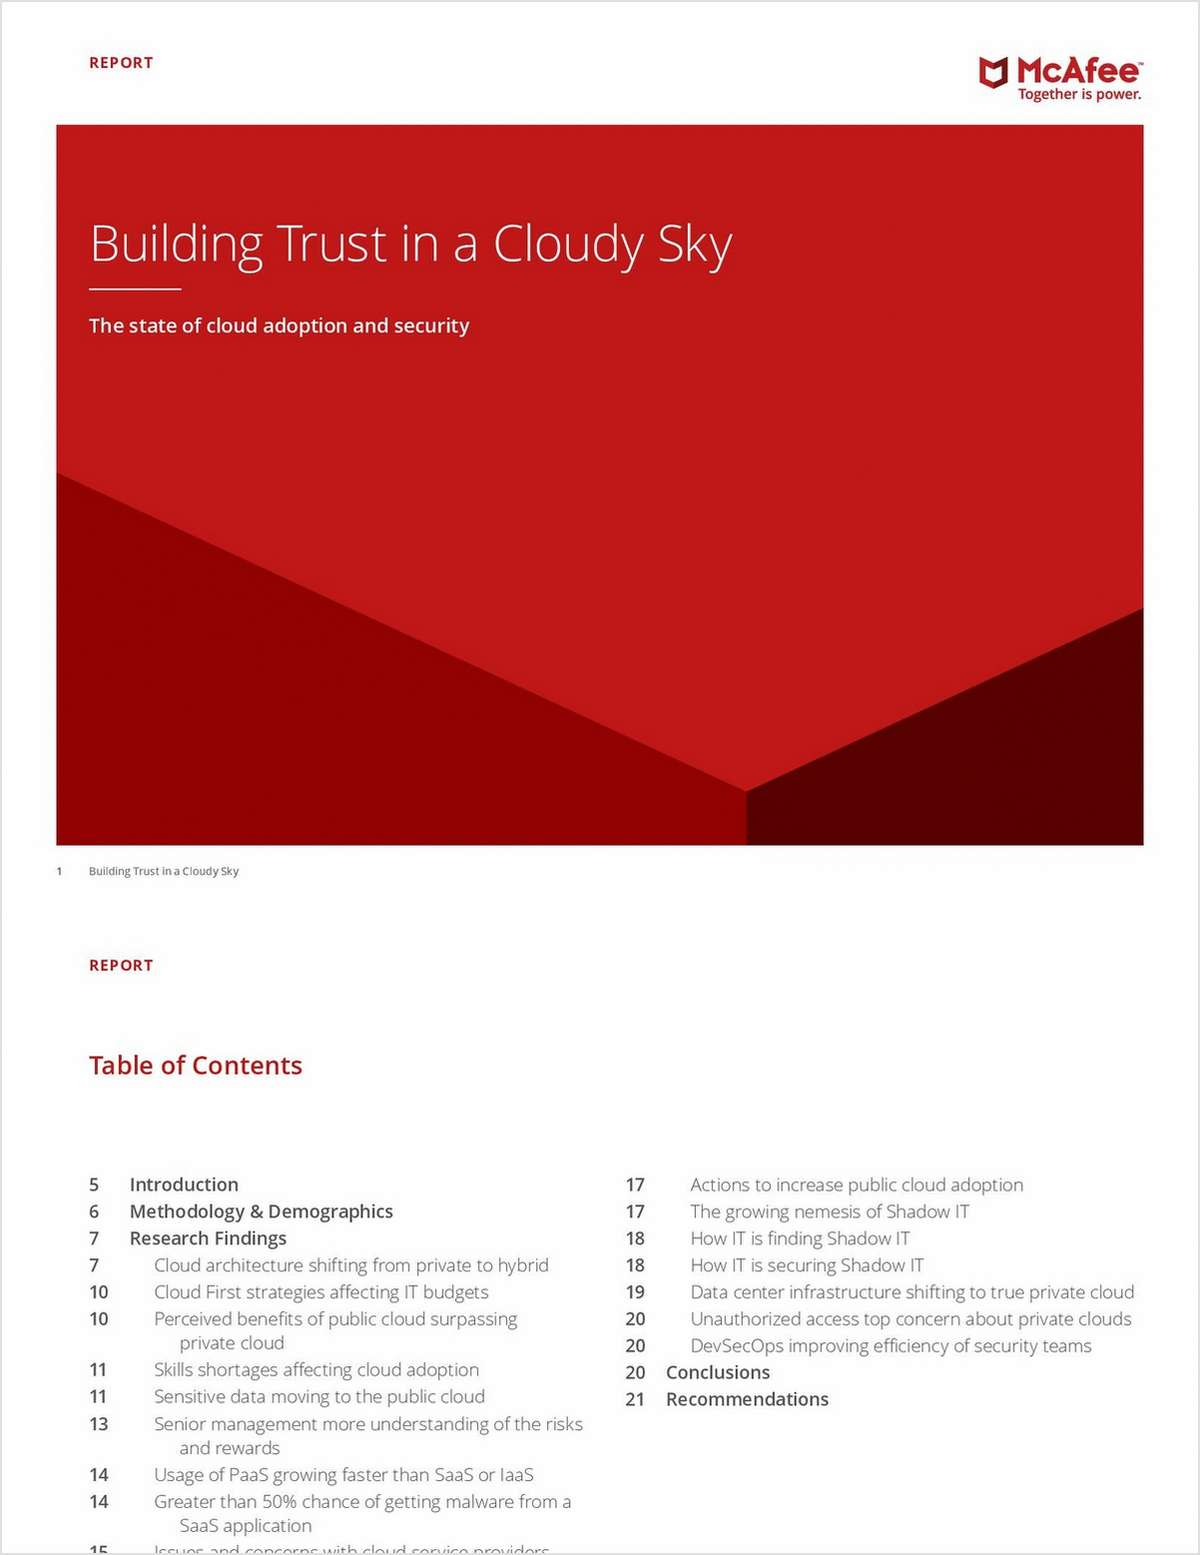 Building Trust in a Cloudy Sky